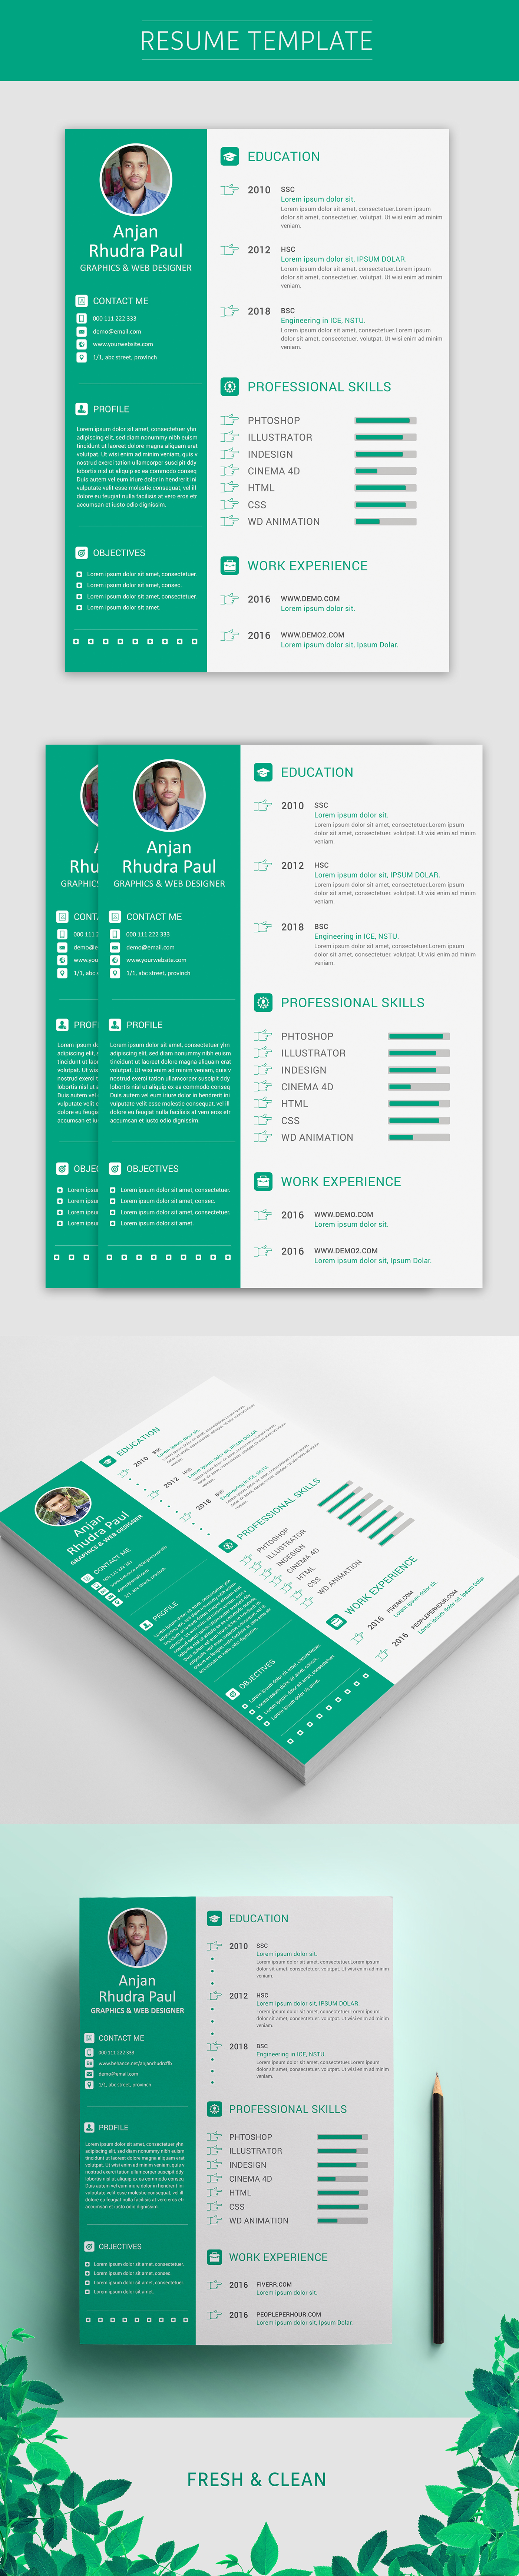 Personal CV/Resume Concept Design on Behance